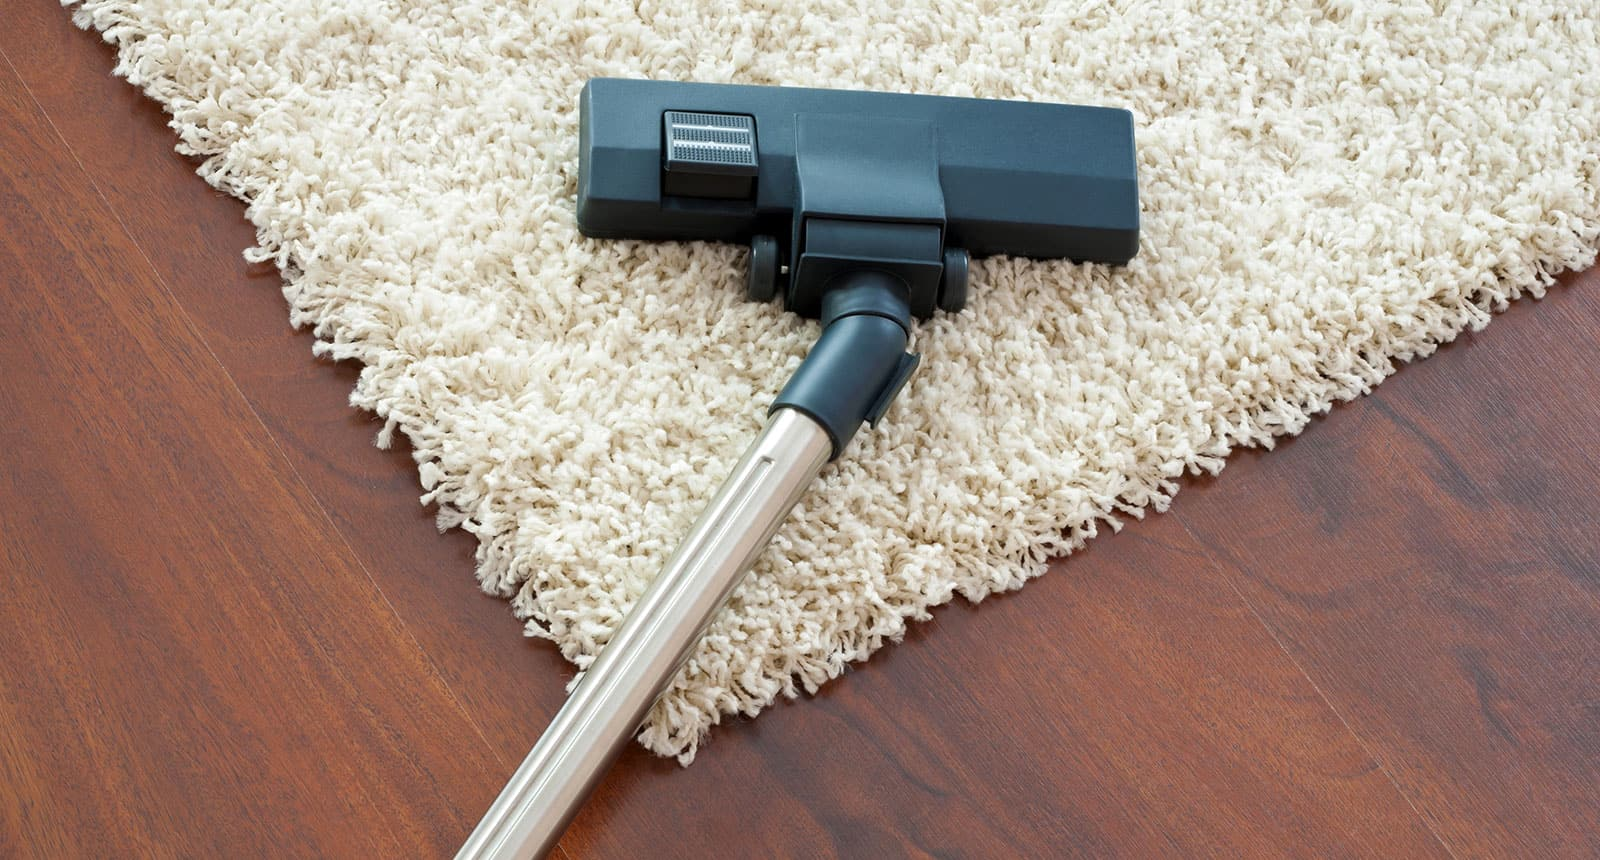 Best Vacuums for Area Rugs